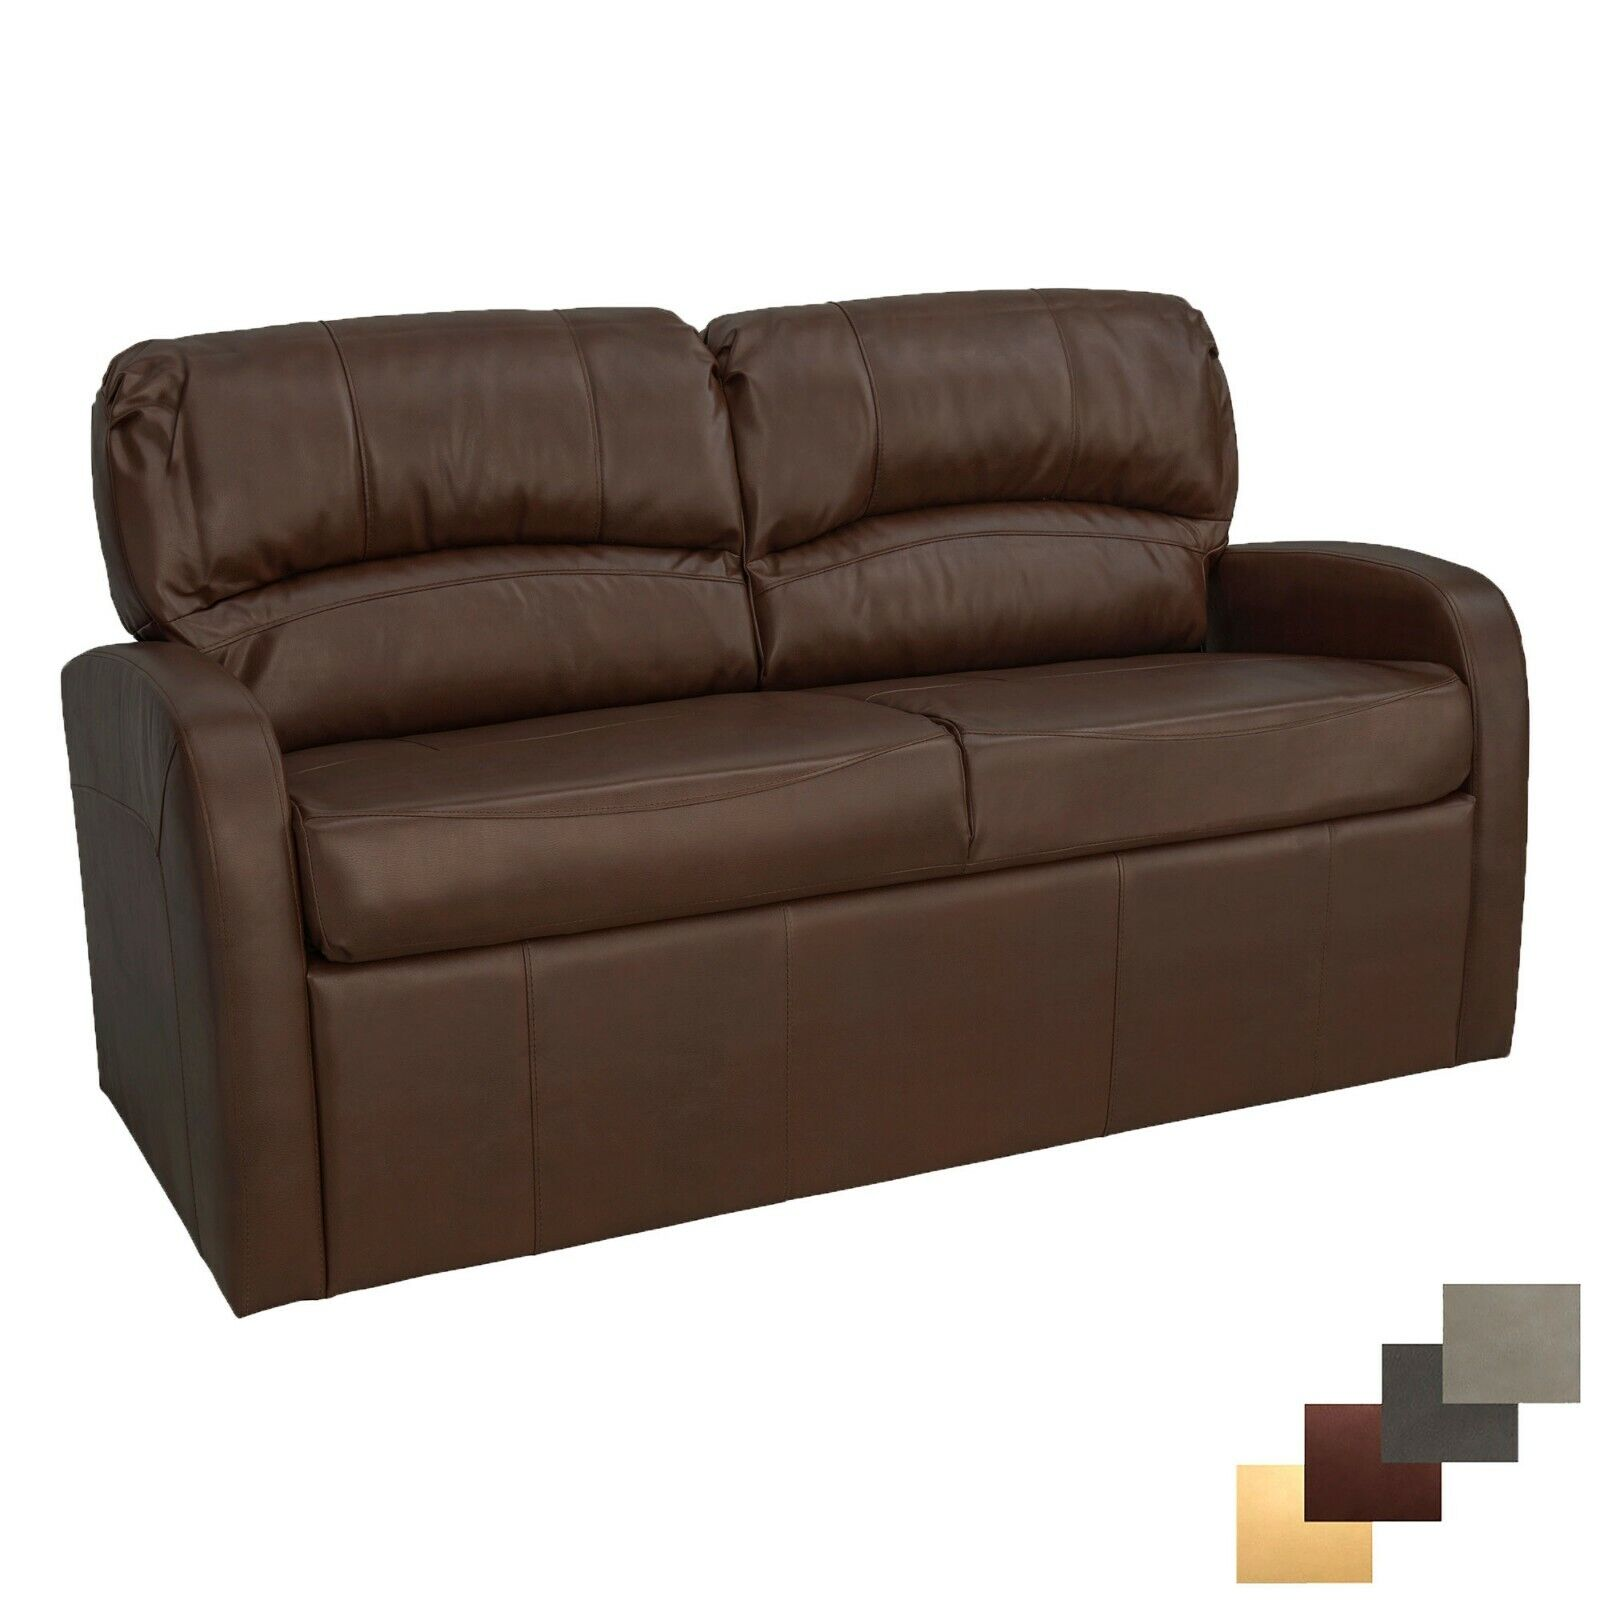 Jack Knife Rv Sleeper Sofa Couch